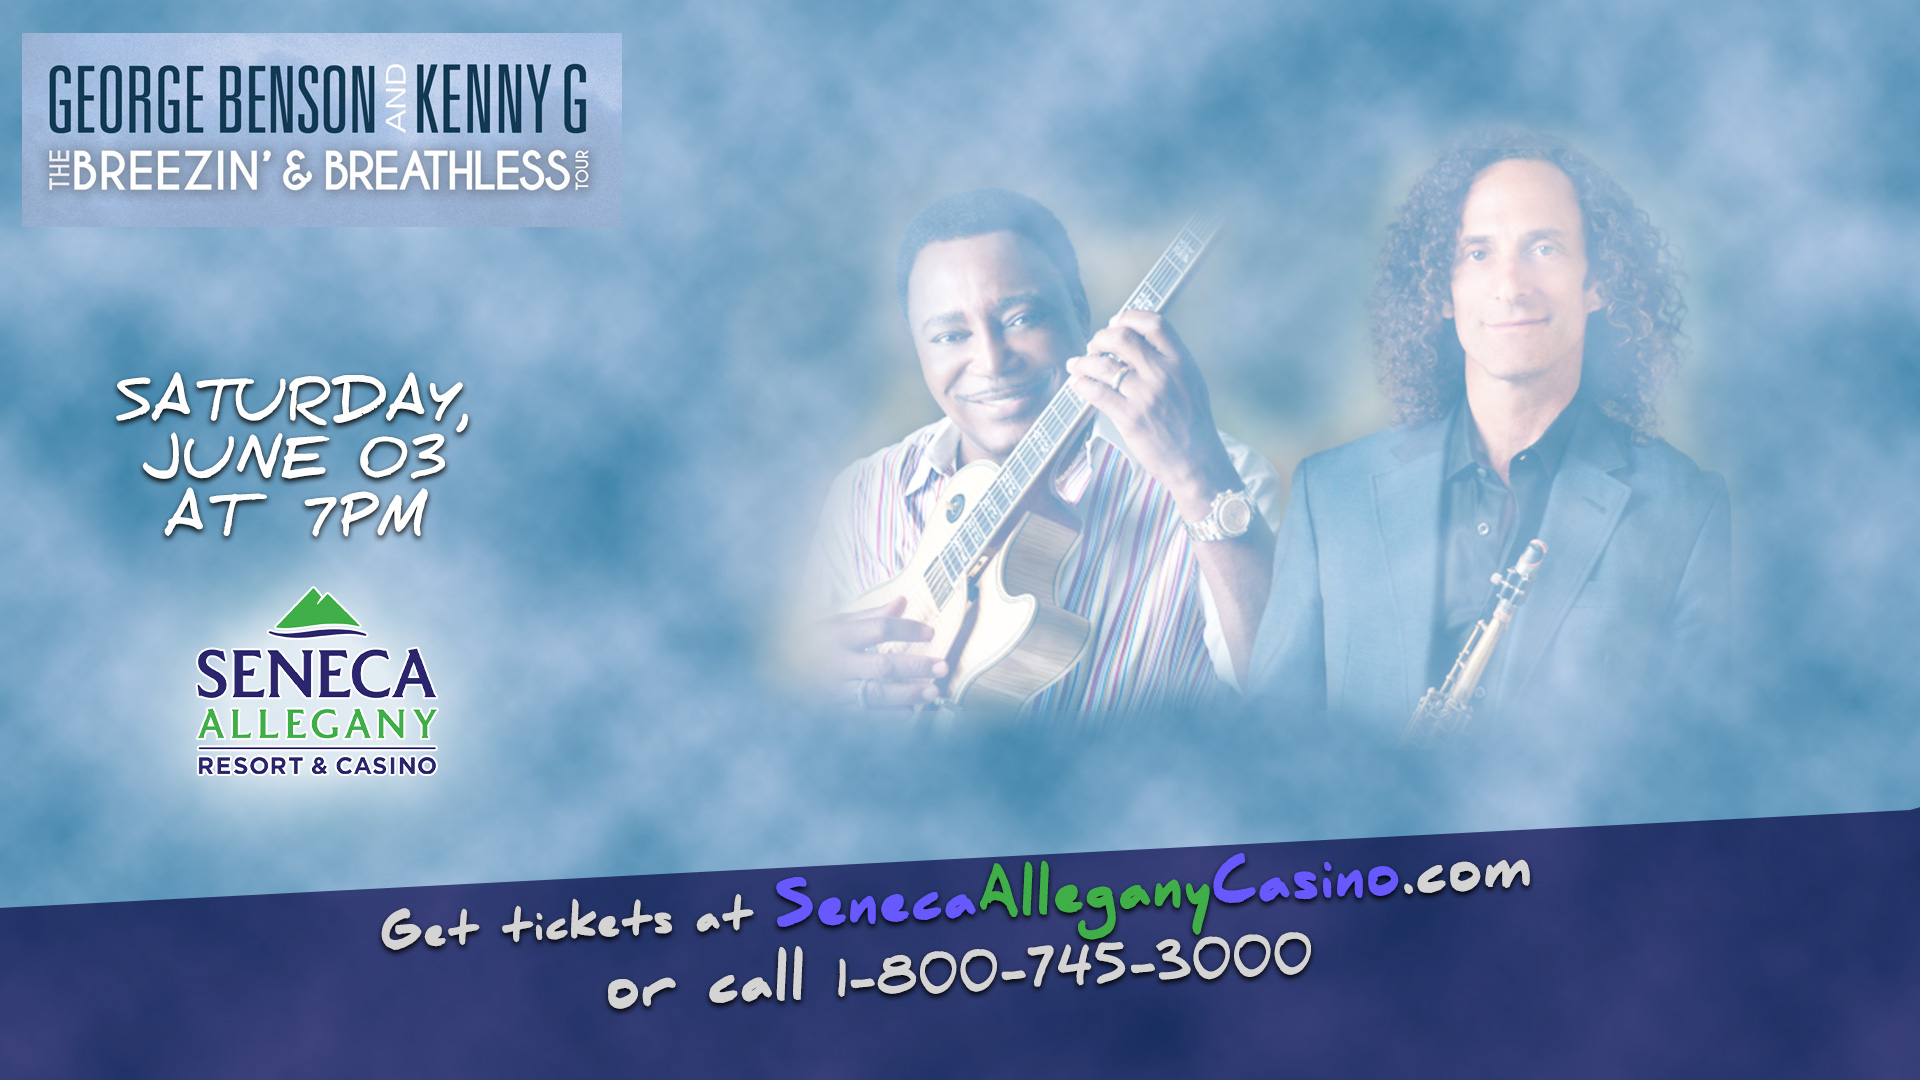 George Benson and Kenny G at the Seneca Allegany Casino